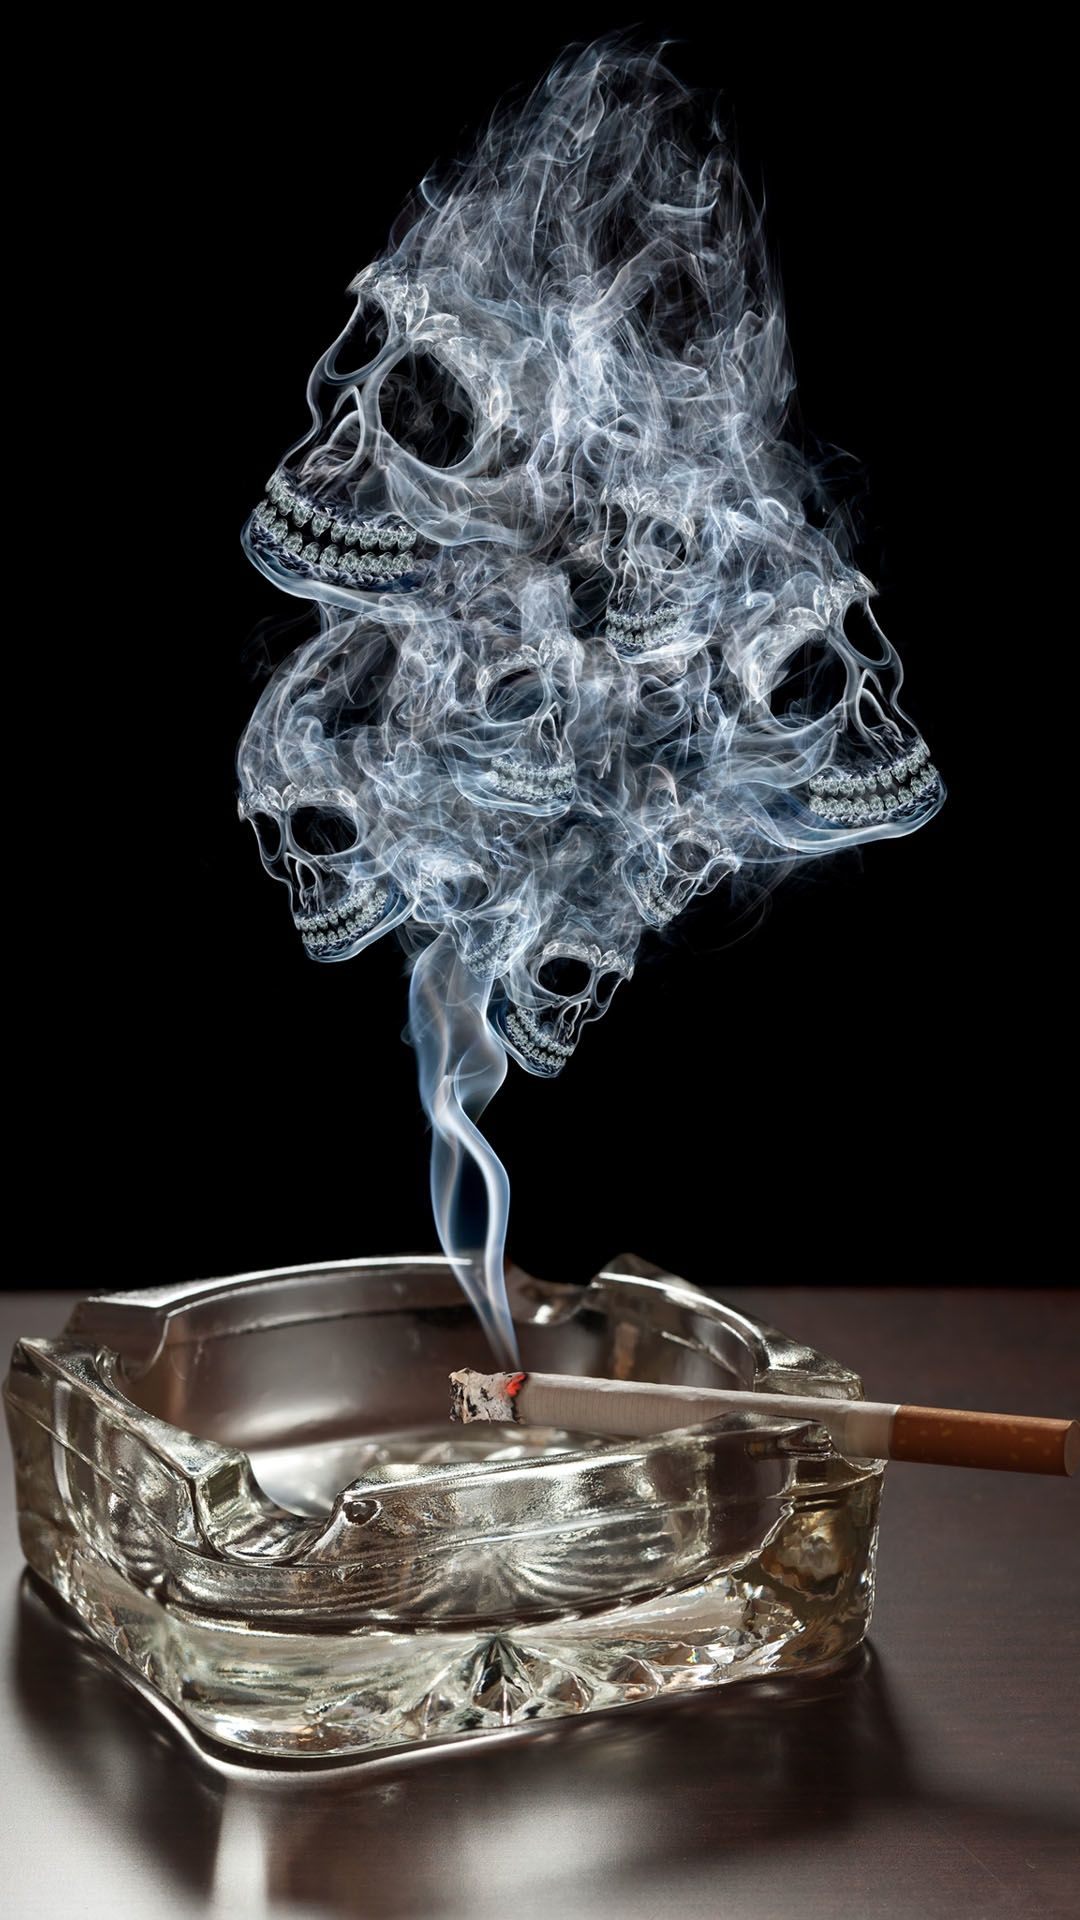 smoke skulls ashtray burning cigarette iphone 6 plus hd